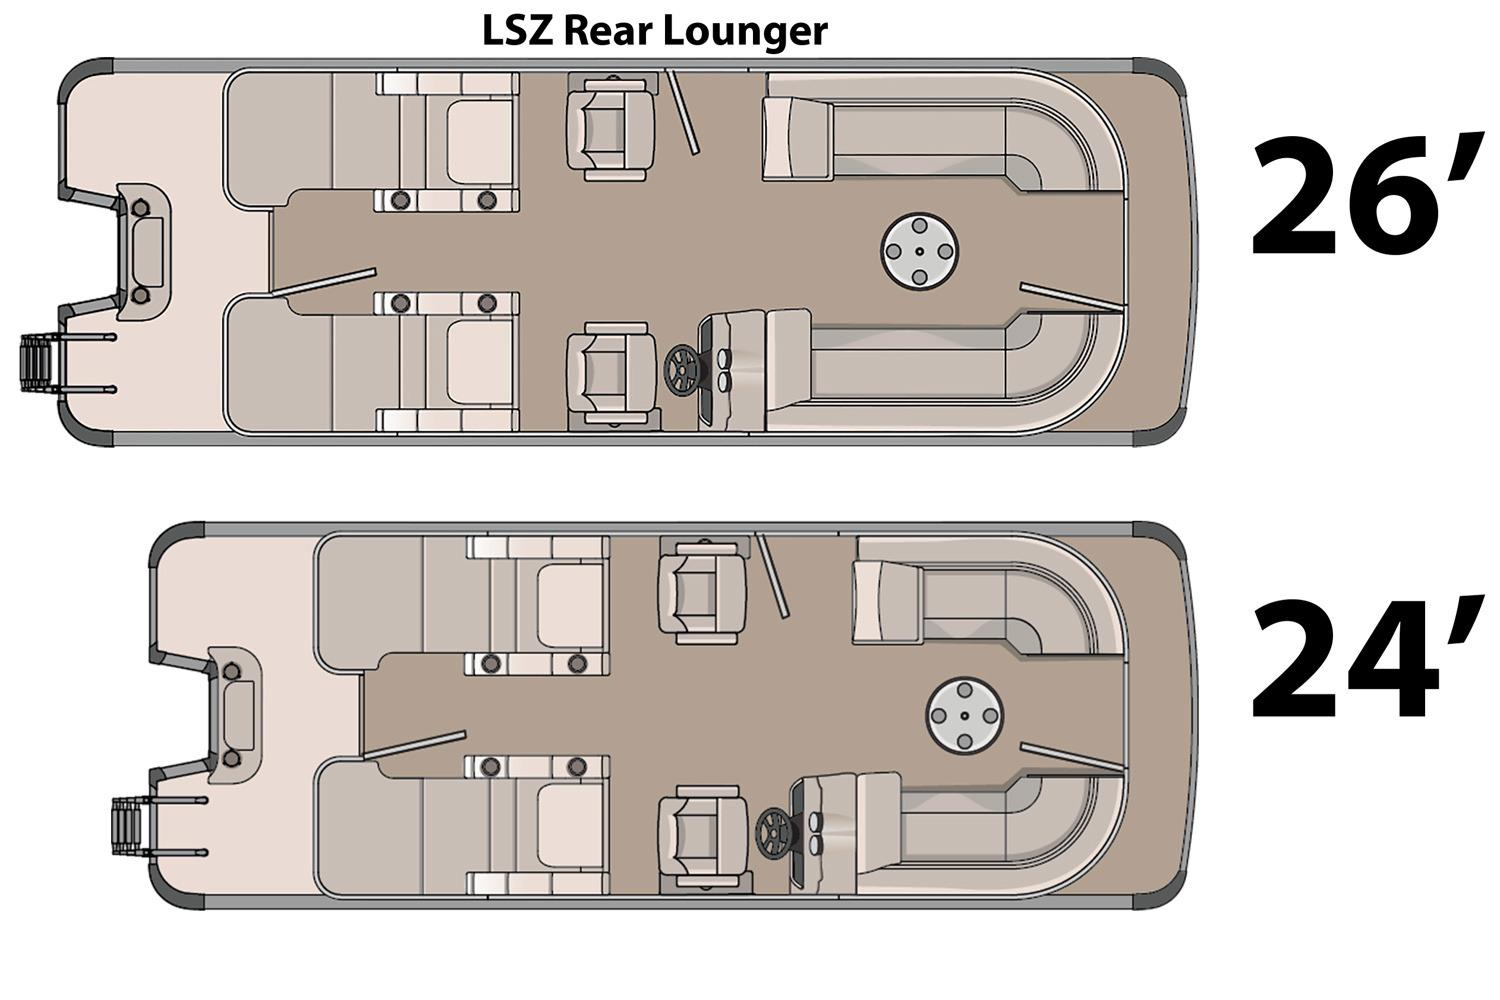 2016 Avalon LSZ Rear Lounger - 24' in Memphis, Tennessee